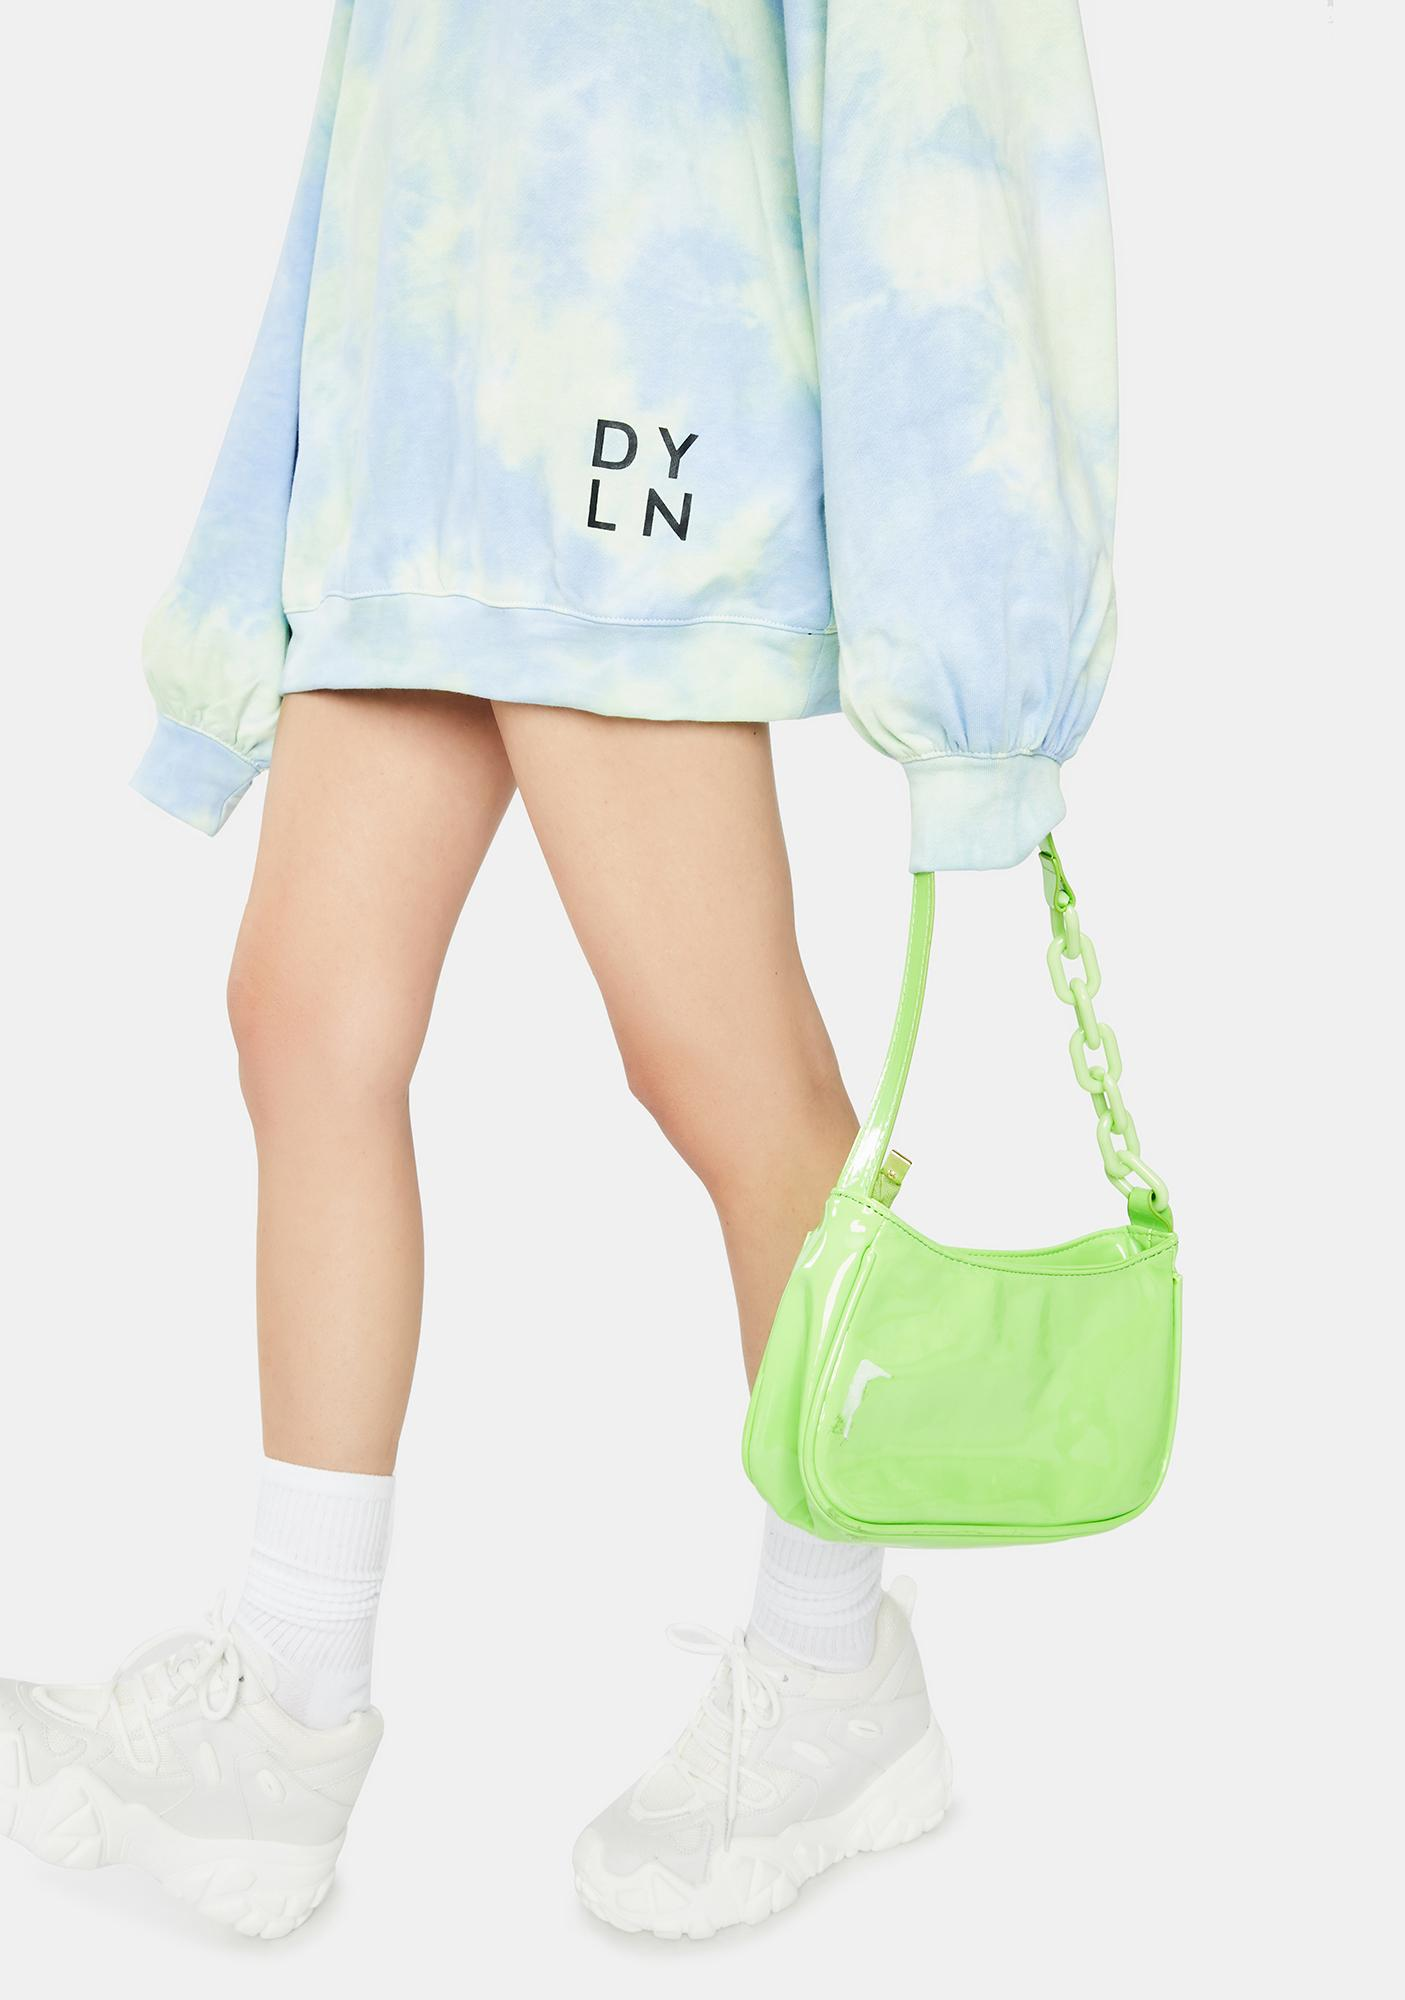 BY DYLN Blue Xander Sweatshirt